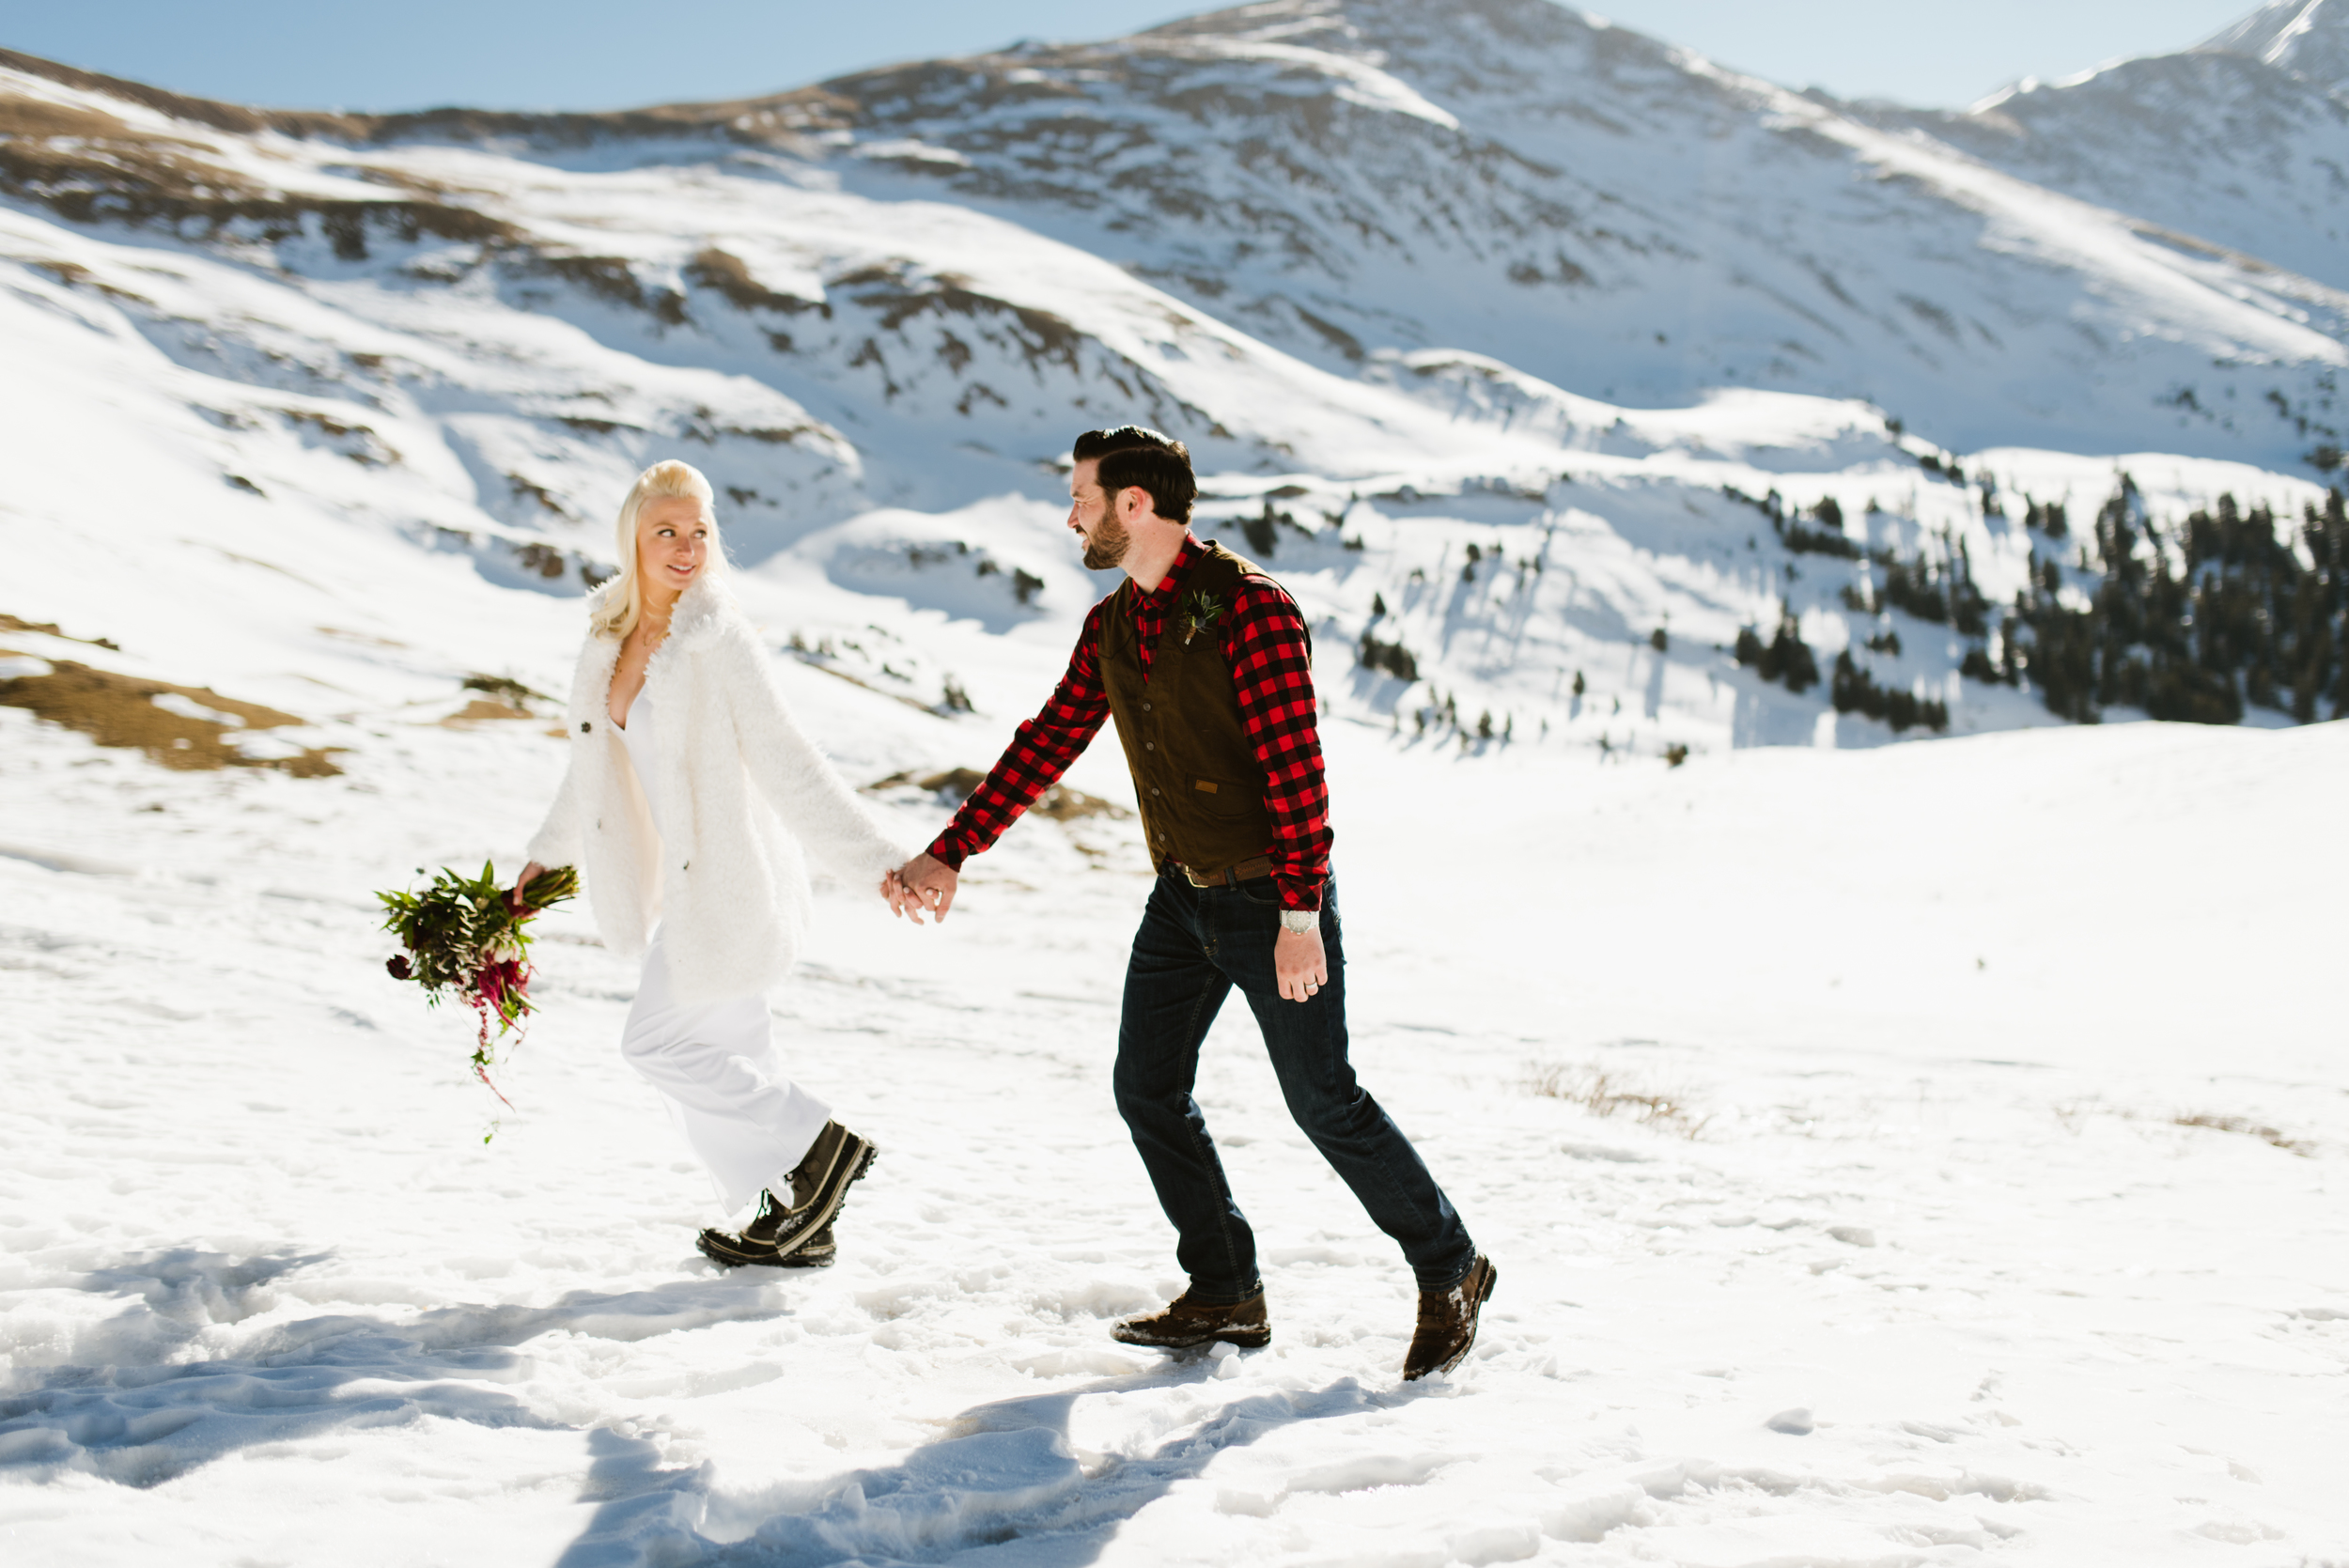 What a romantic setting for a wedding! Keystone, Colorado's mountainous landscape is an amazing elopement spot!| Romantic winter wedding photo by Maddie Mae